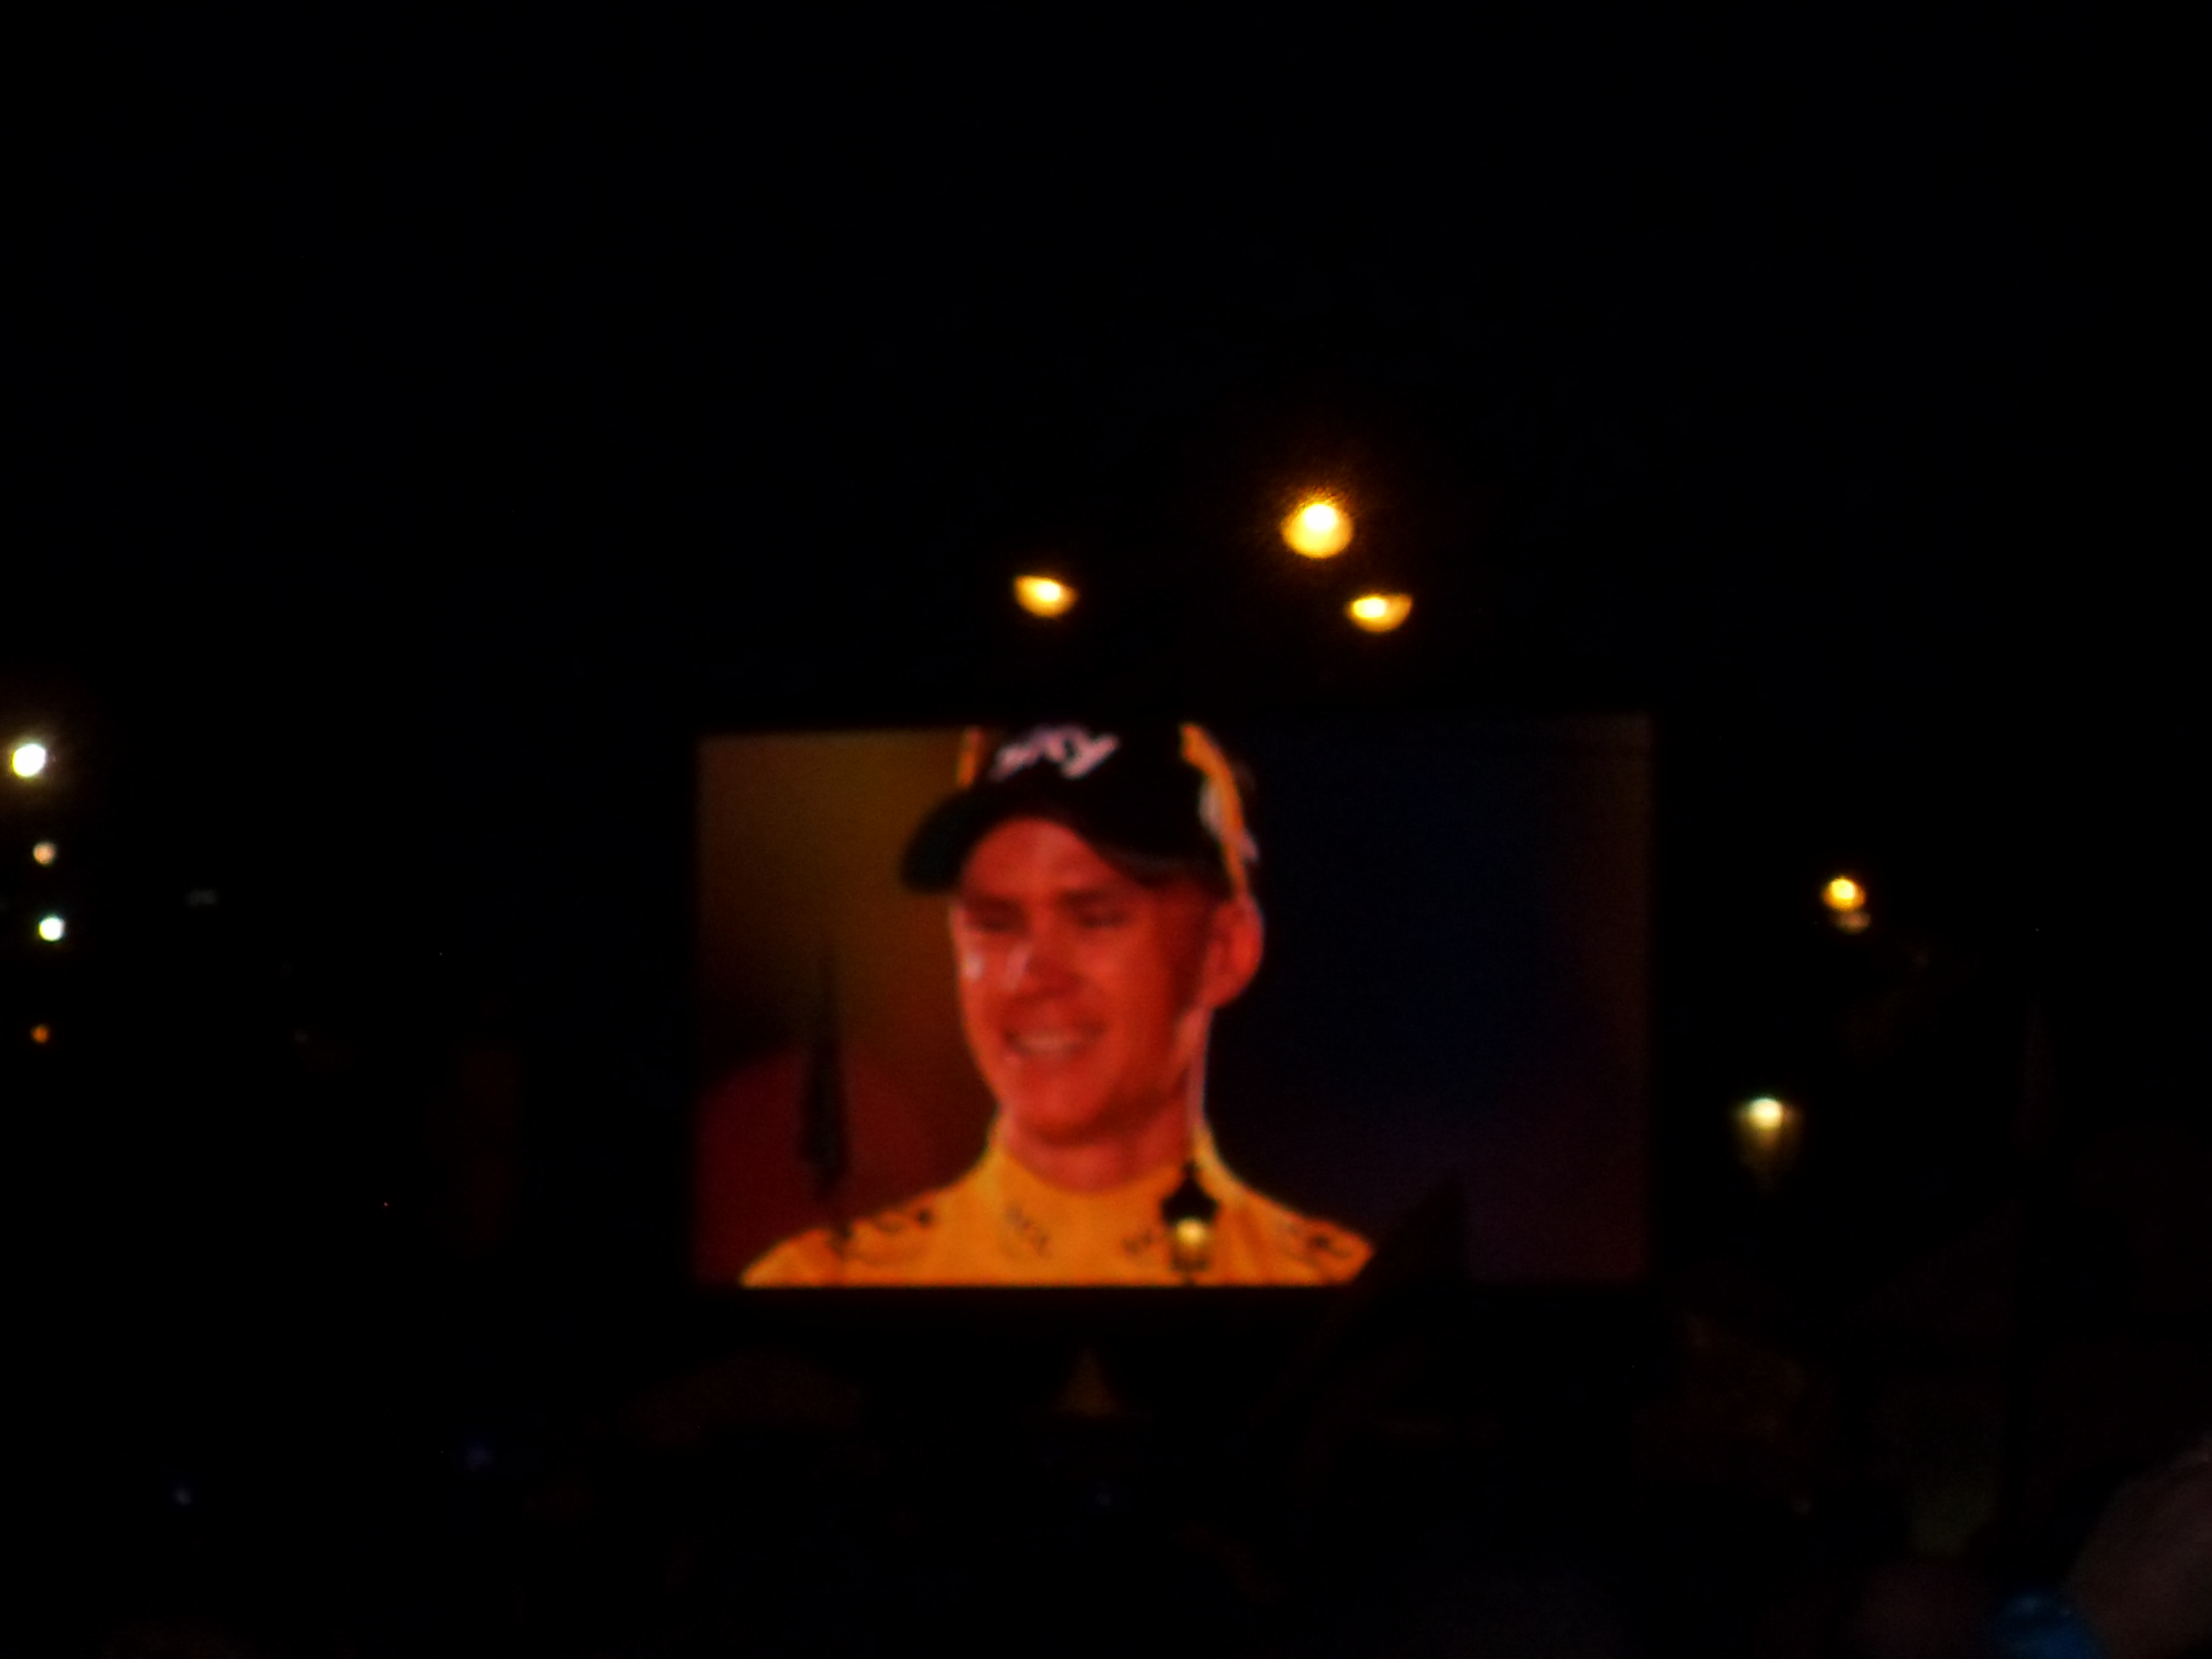 Christopher Froome, el ganador del 100 Tour de France